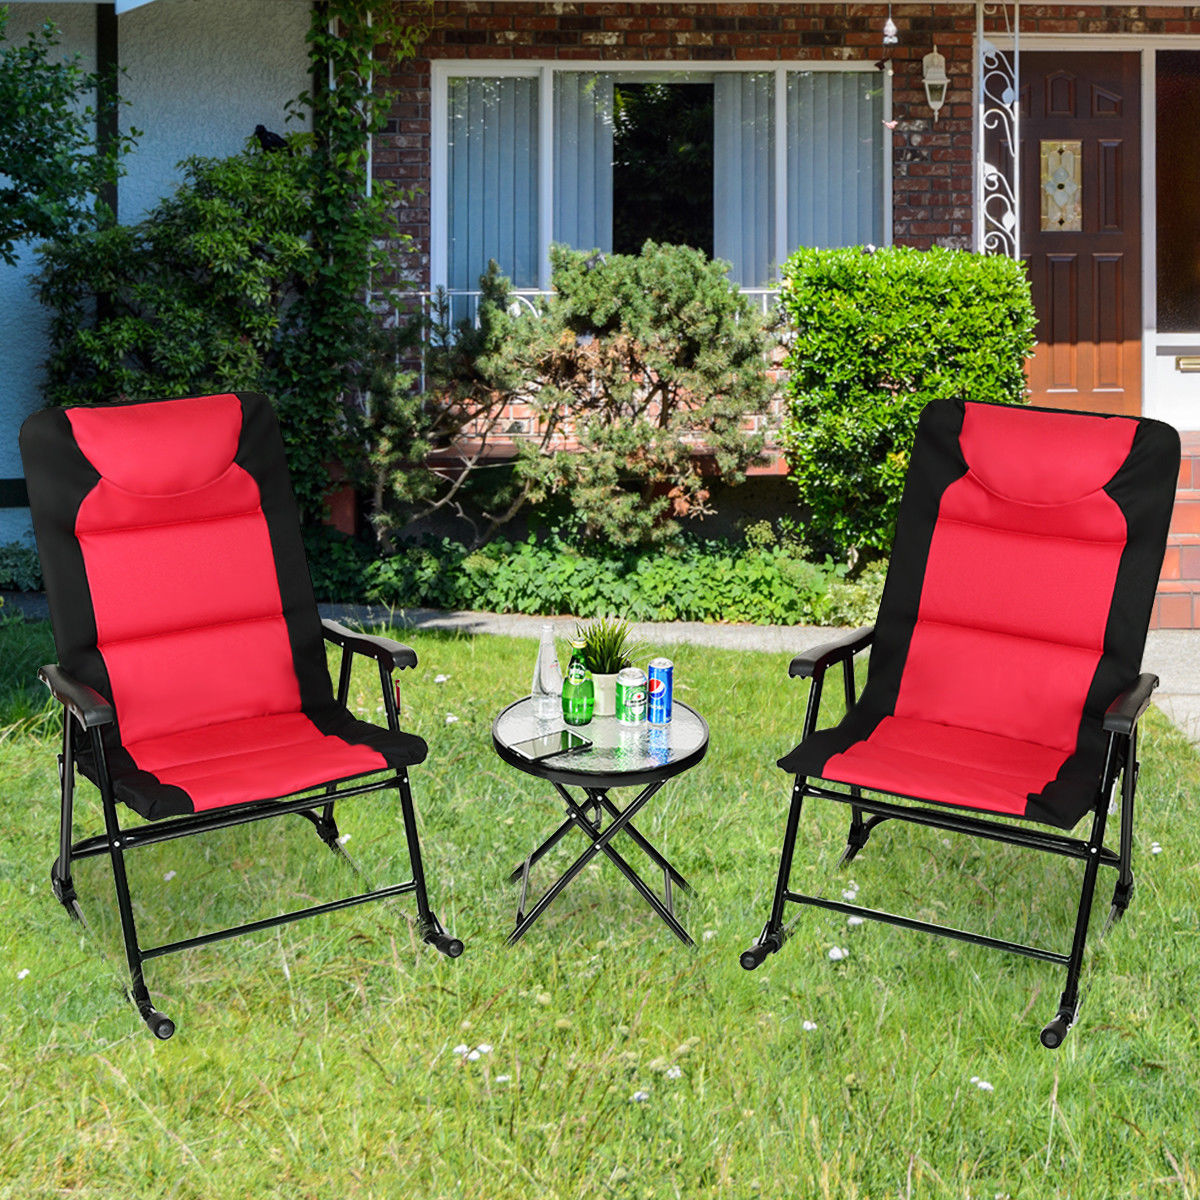 Costway 3 PCS Outdoor Folding Rocking Chair Table Set Bistro Sets Patio Furniture Red